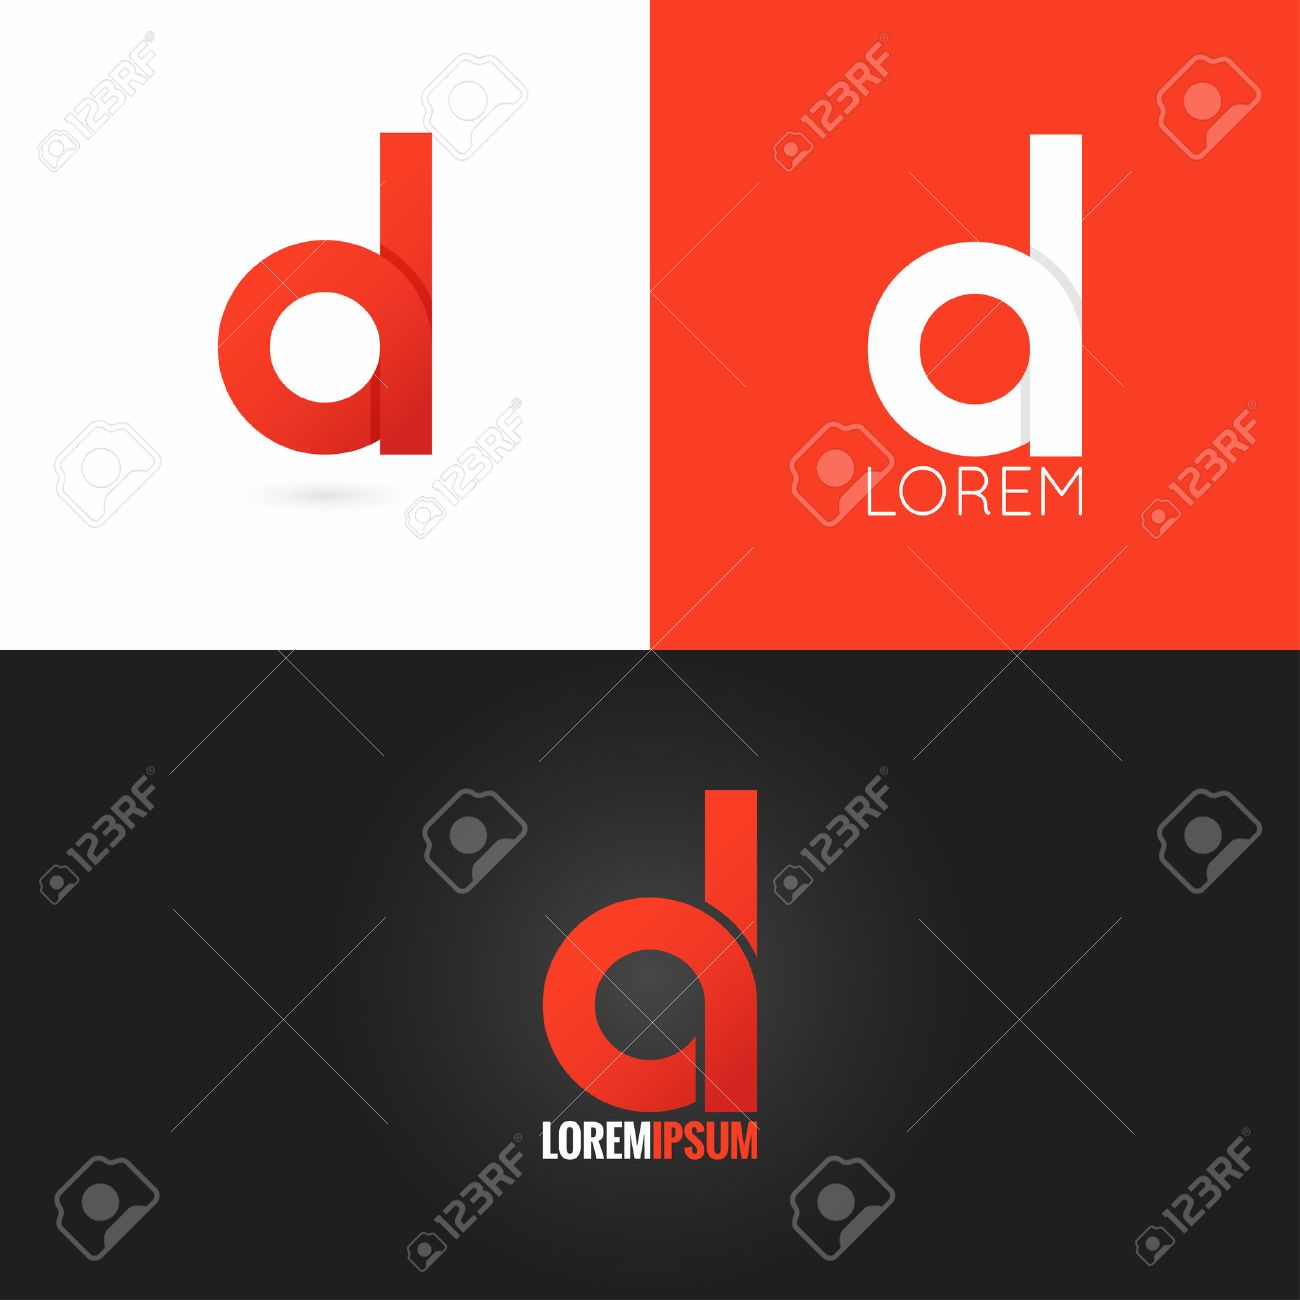 D logo stock photos royalty free d logo images letter d logo design icon set background thecheapjerseys Images